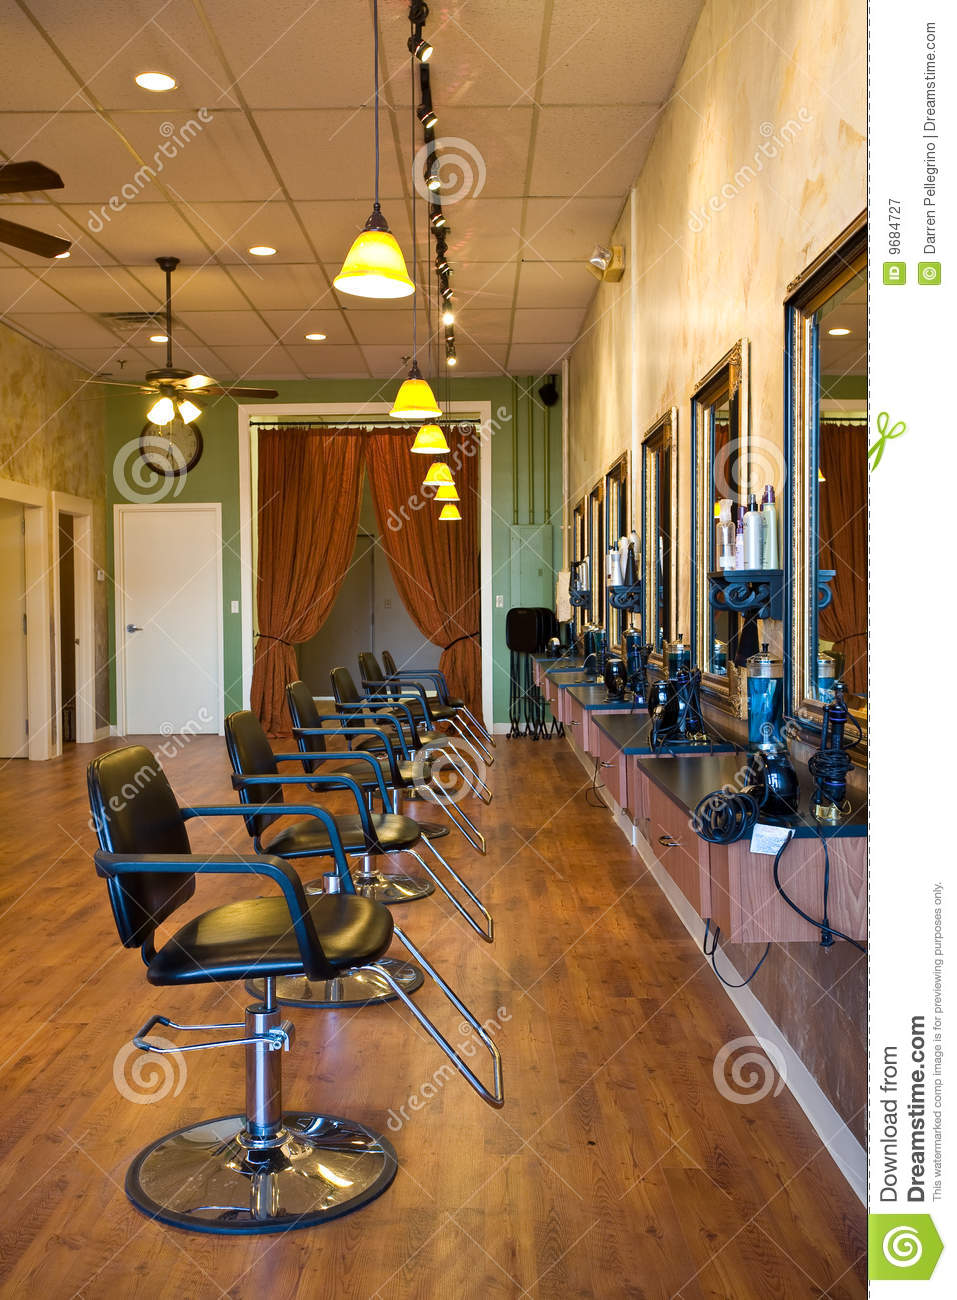 beauty salon interior stock image  image of cool  business